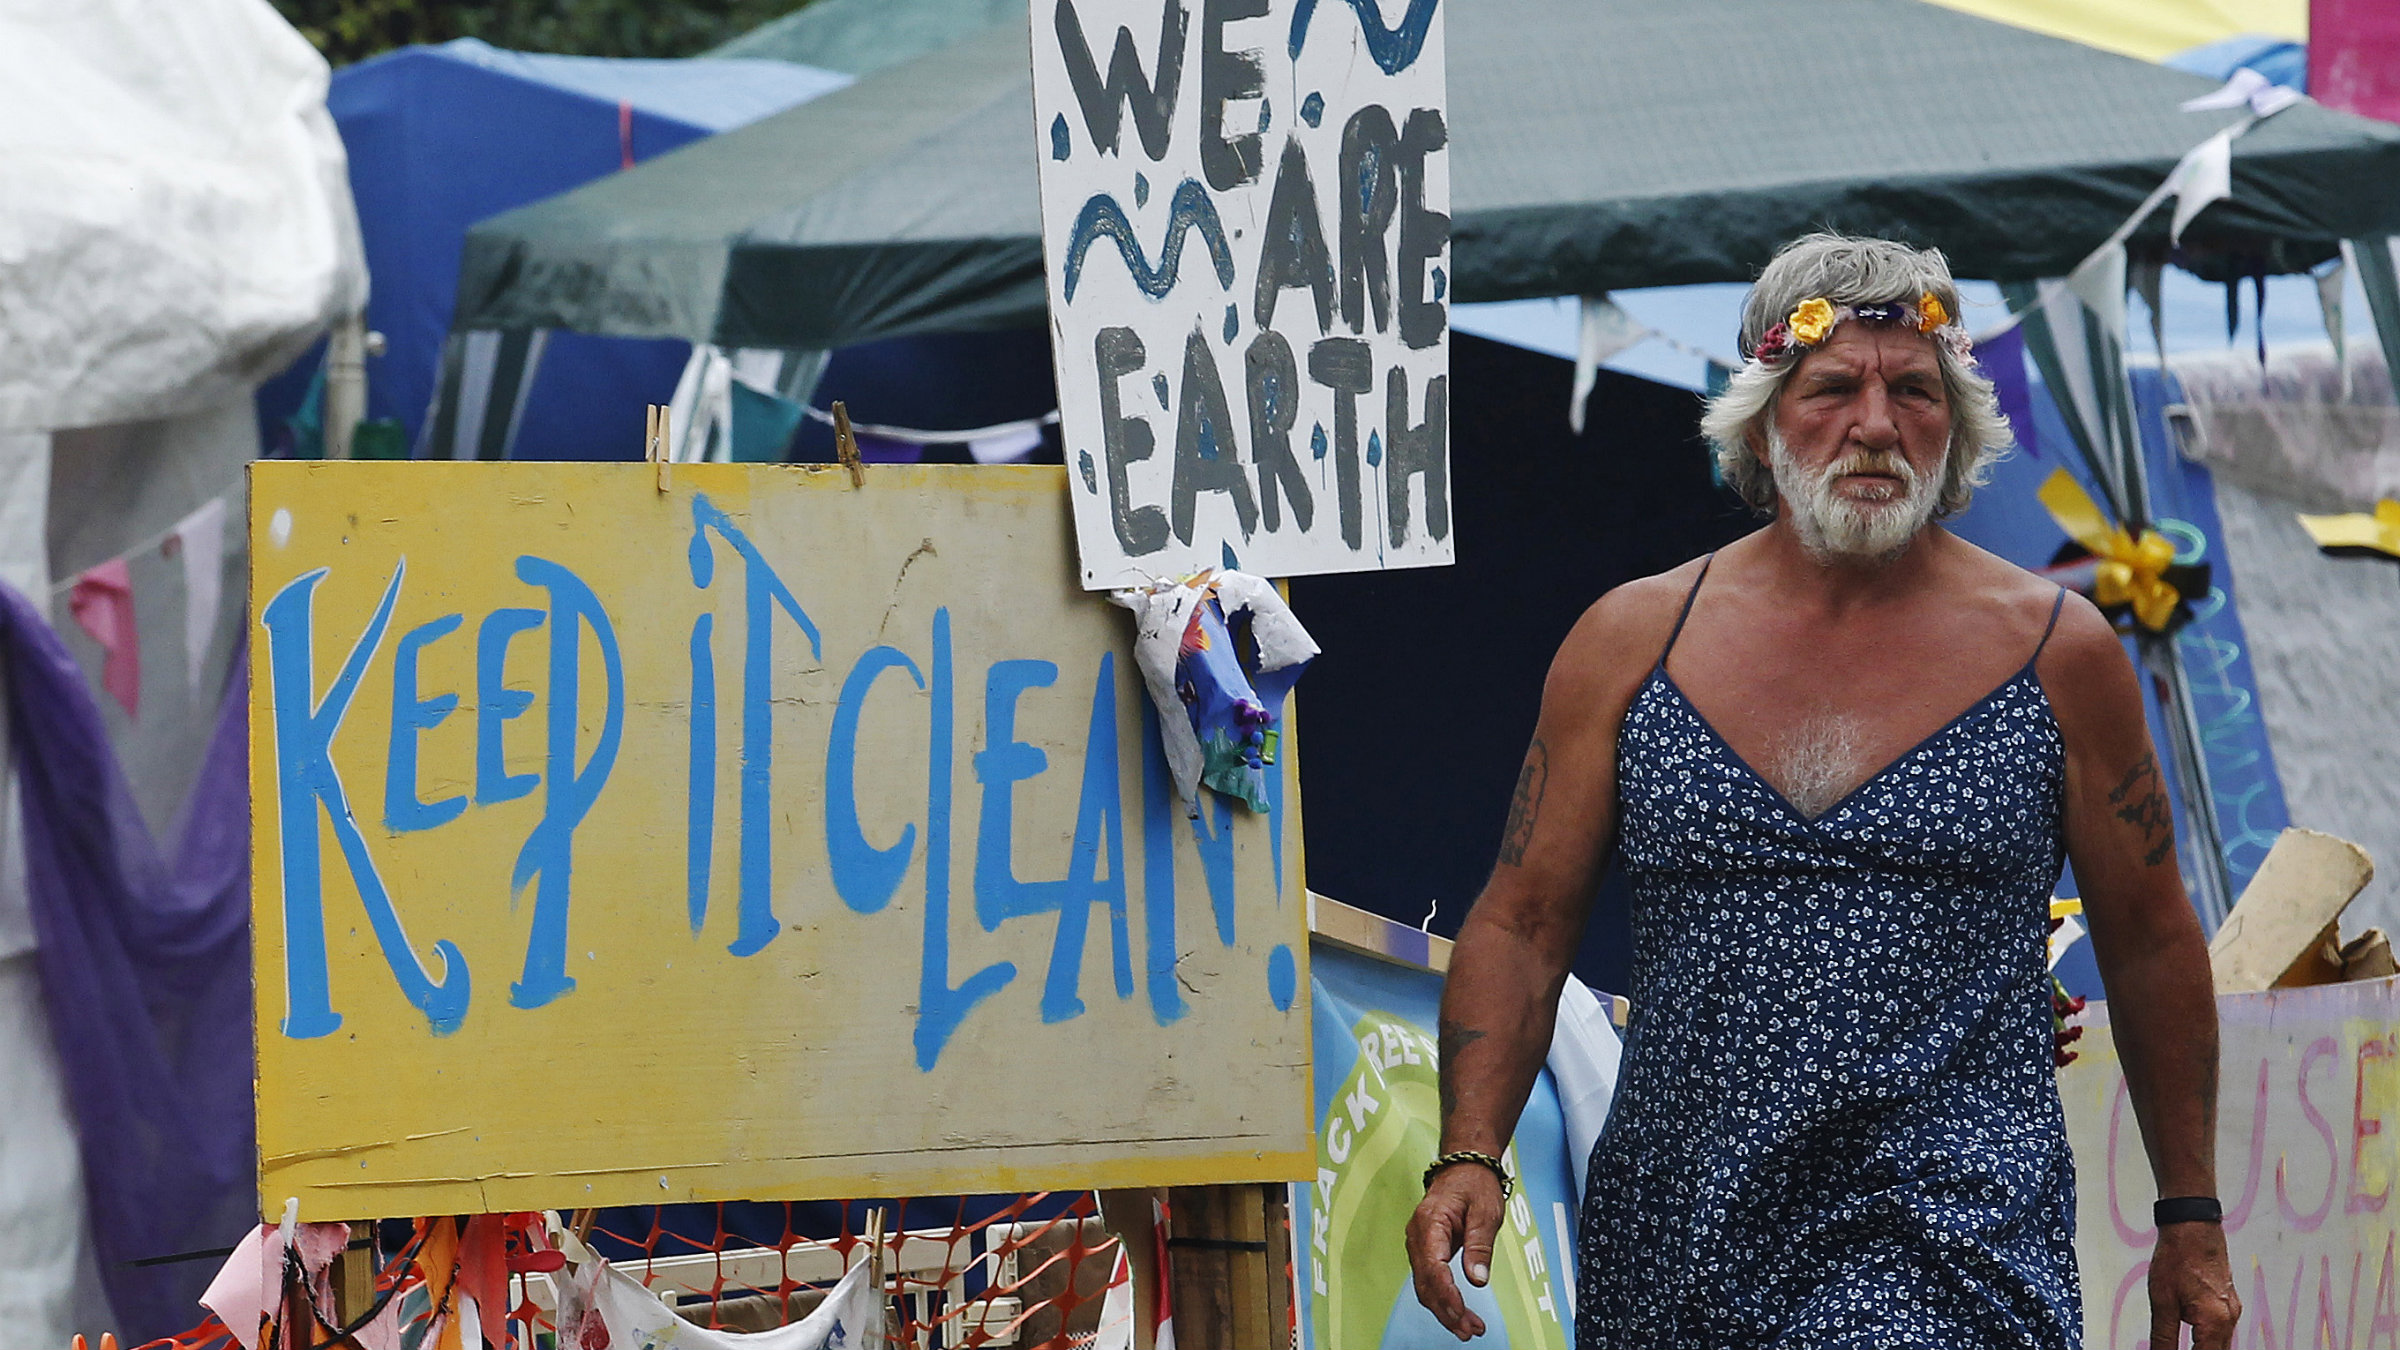 A man wearing a dress walks past signs at the protest camp in front of a drill site run by Cuadrilla Resources, in the village of Balcombe in southern England September 3, 2013. Caudrilla Resources's site in the village of Balcombe in rural West Sussex has become a focal point for protesters who oppose fracking, a technique the company has pioneered in the search for shale gas in Britain.